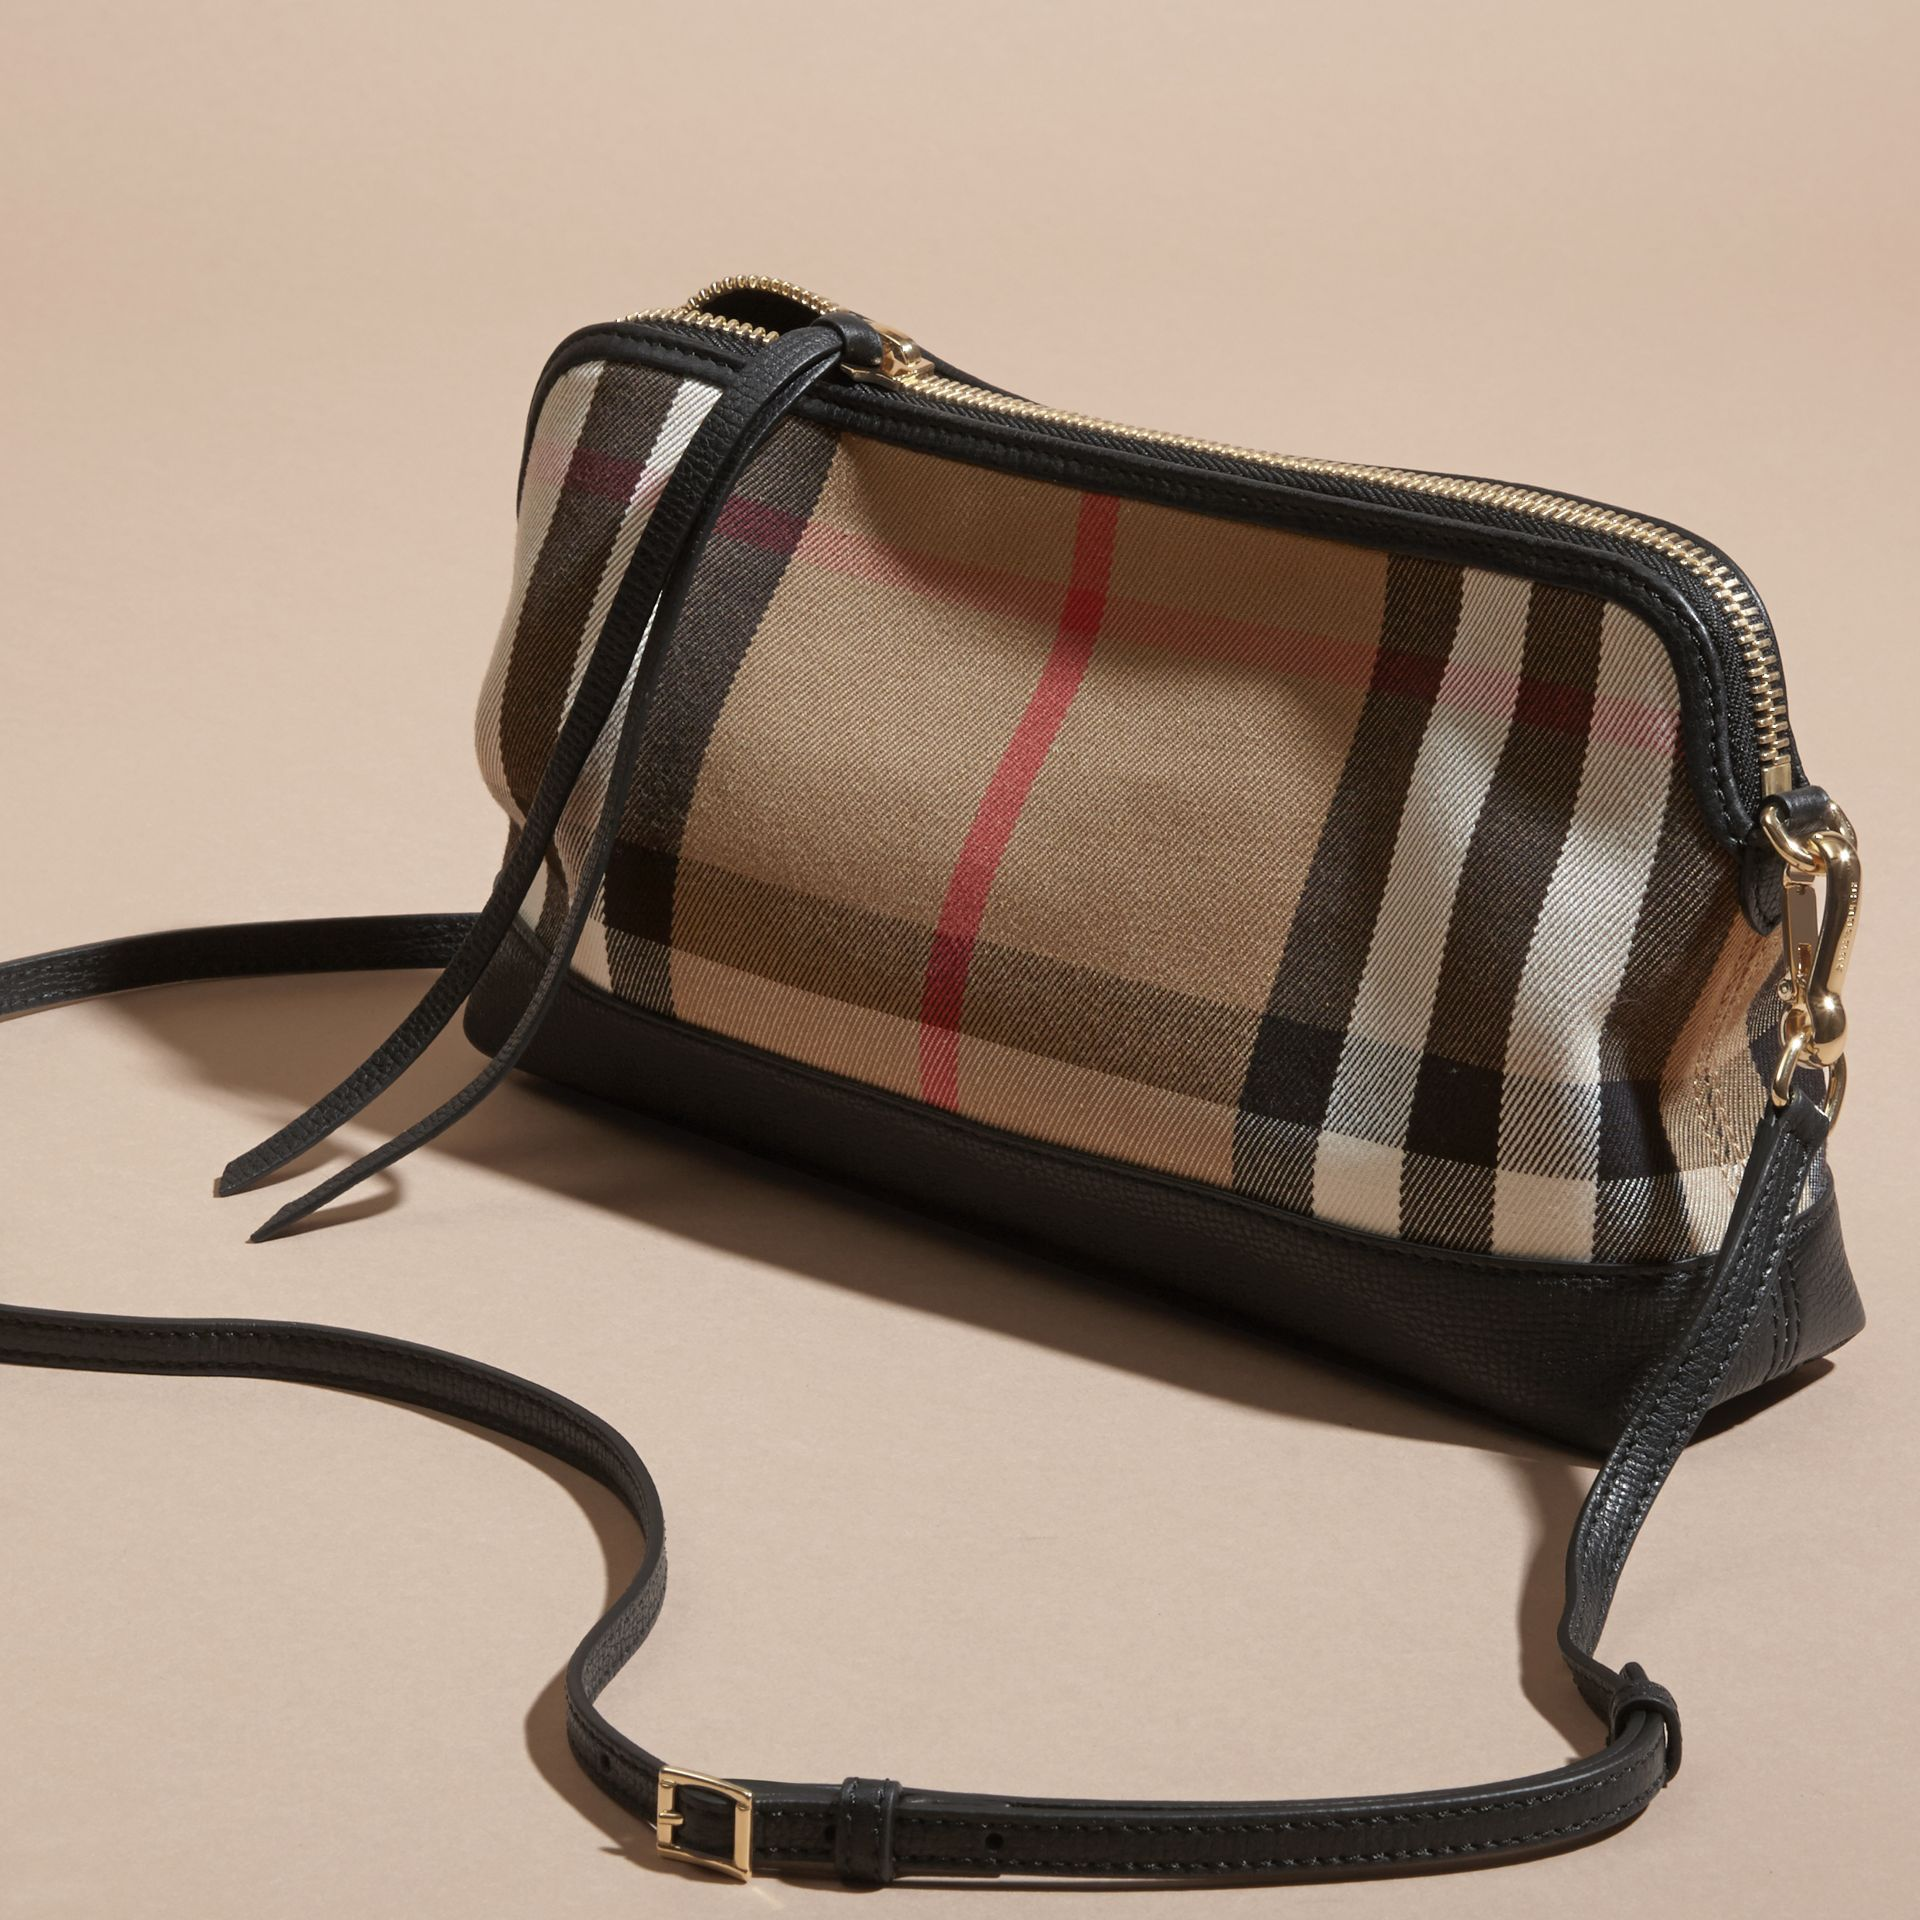 House Check and Leather Clutch Bag in Black - Women | Burberry - gallery image 8